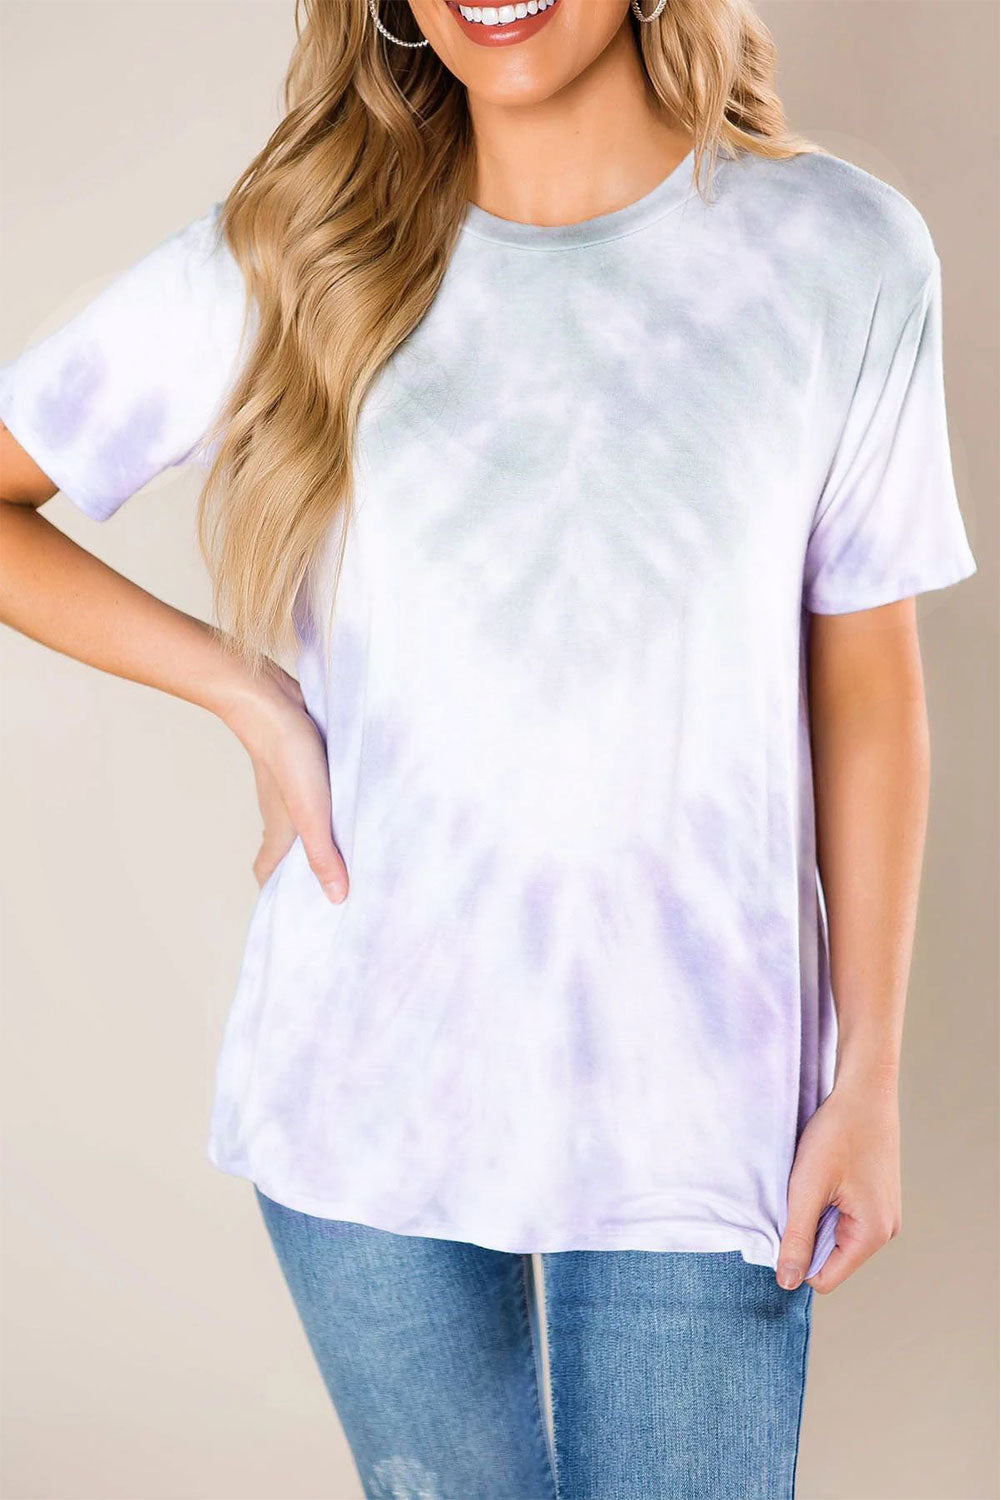 Gradient Purple Tie Dye T-shirt